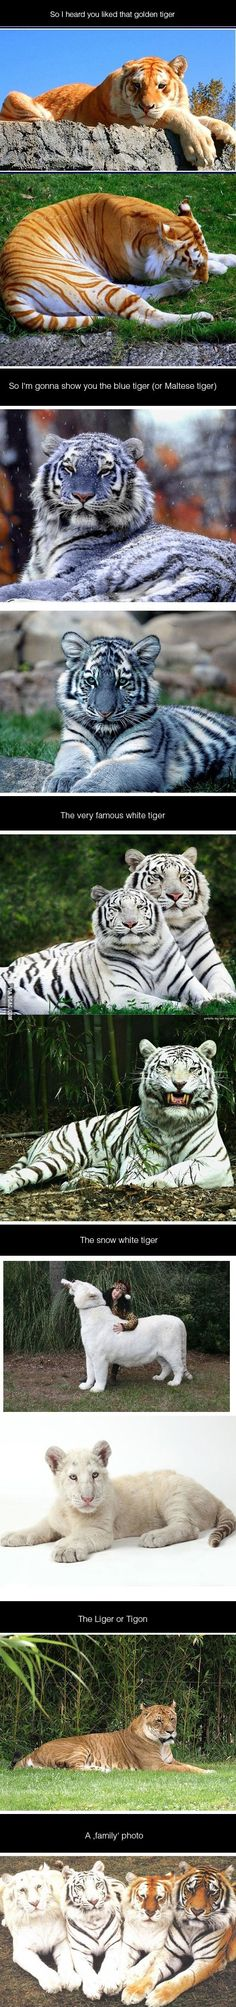 Tiger color variants. Unfortunately, the Maltese Tiger is photoshopped, as this variant has never been confirmed